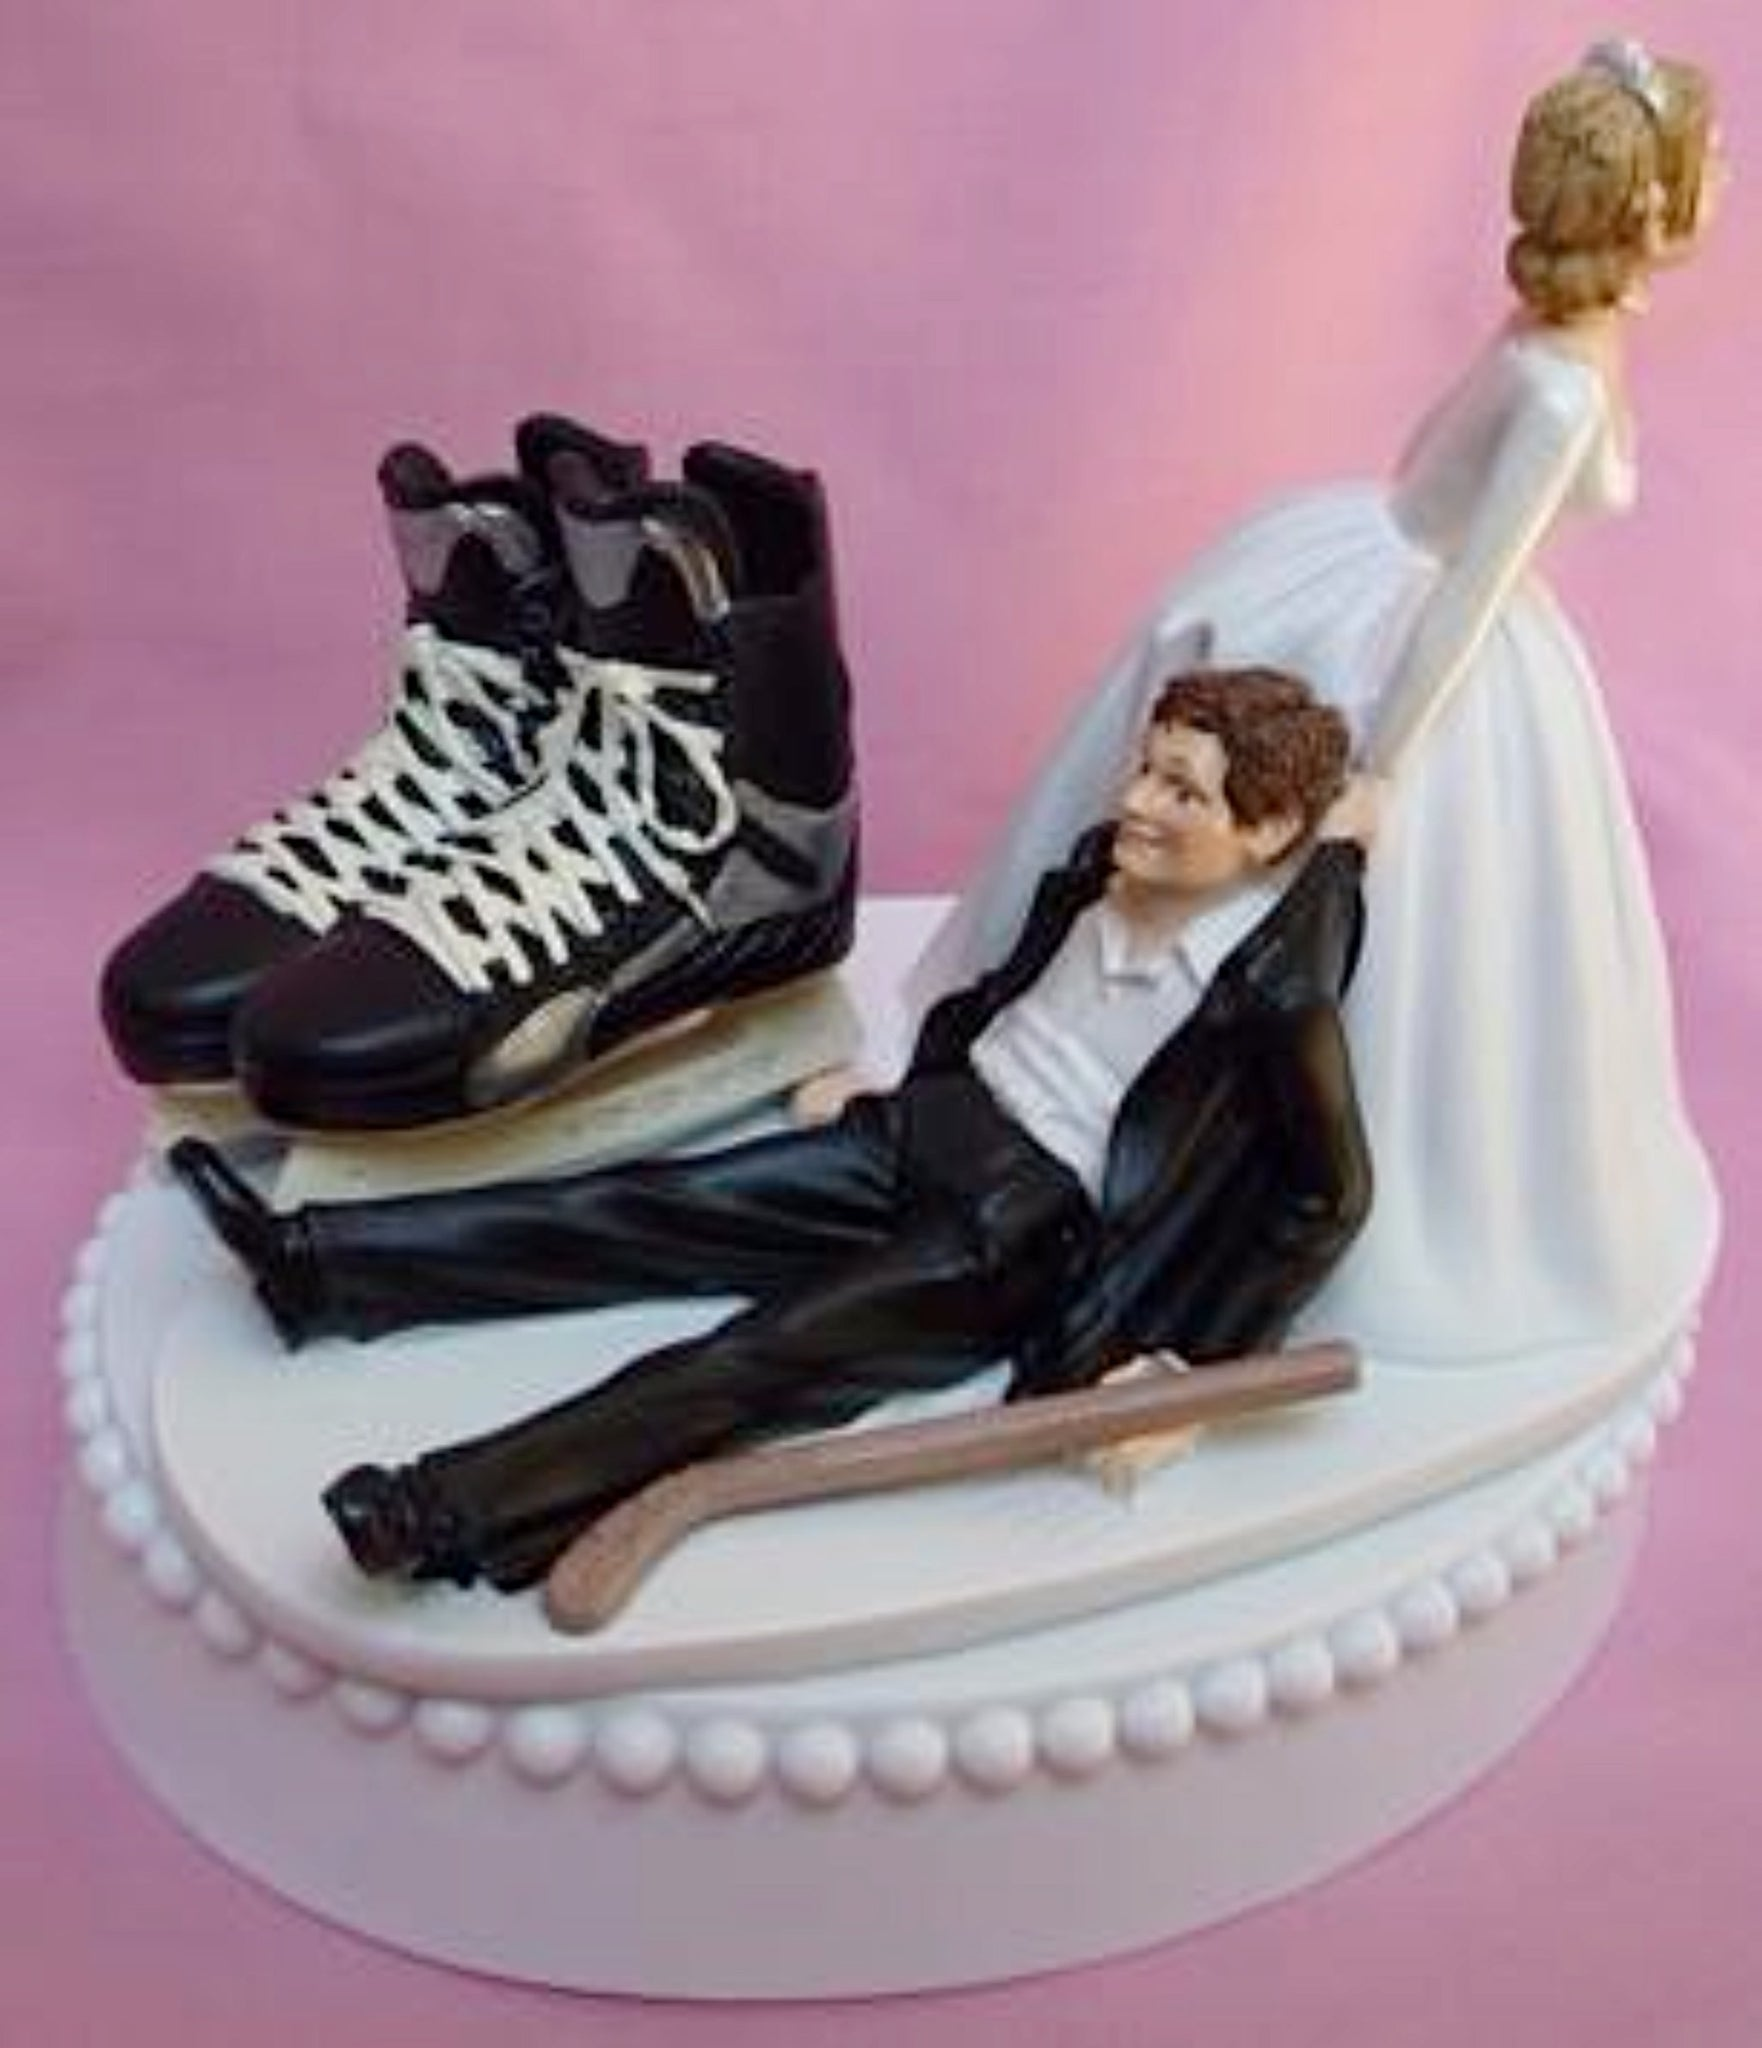 Hockey wedding cake topper skates stick groom's cake topper FunWeddingThings.com sports fan fun